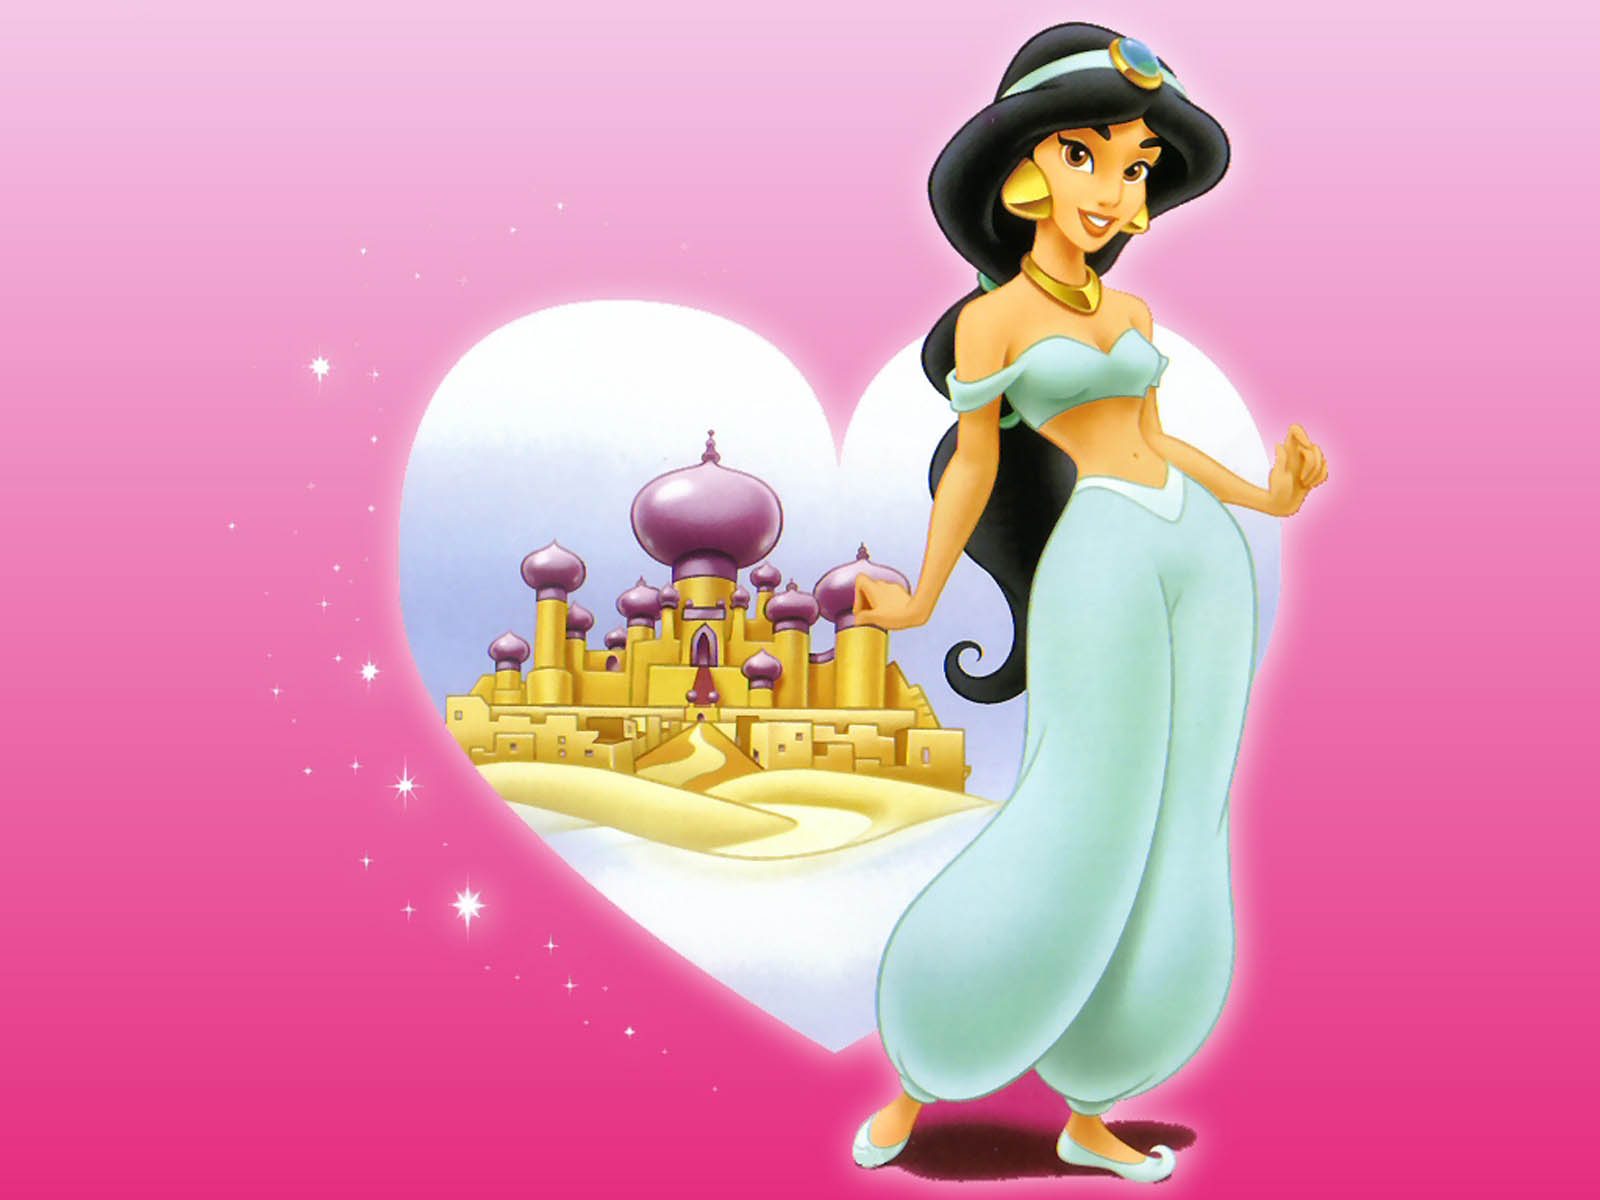 Disney Princess Jasmine Wallpapers together with Mickey Mouse Wallpaper Funny additionally Psychedelic Art Wallpaper furthermore Scary Wallpaper additionally Tangled Expensive Hollywood Animated Movie Rtr. on walt disney world desktop themes